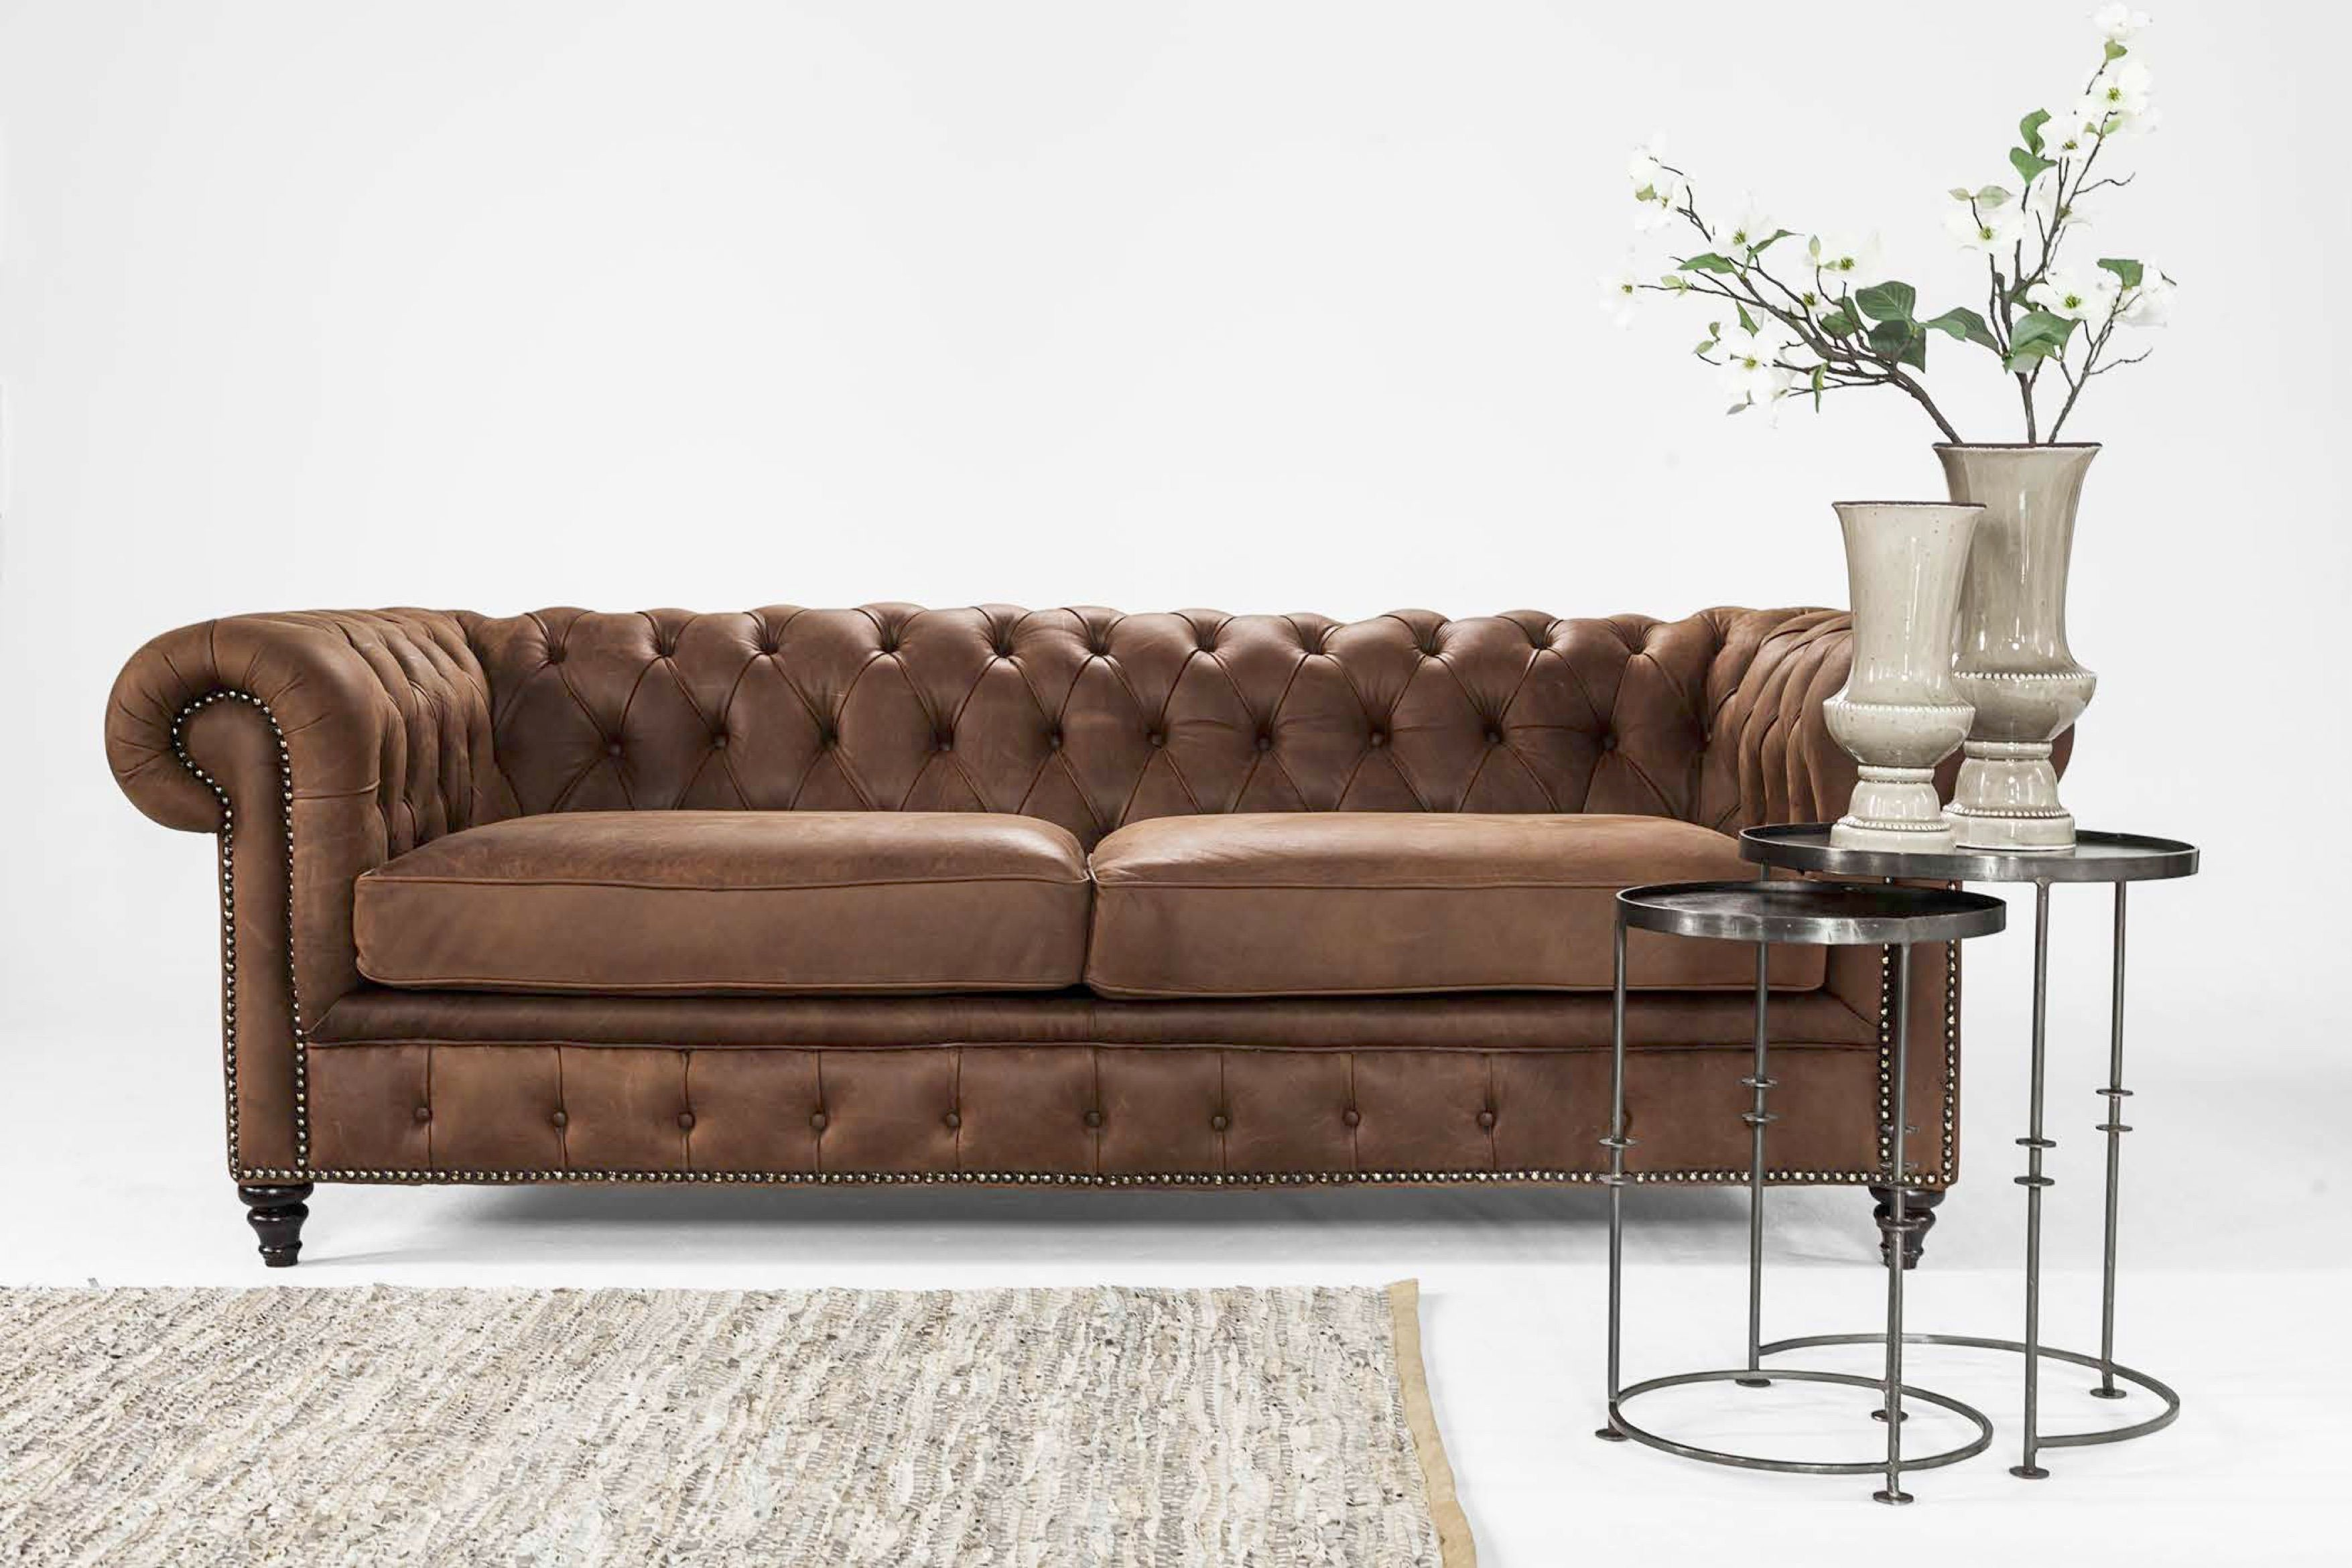 Astounding Chester Couch Modern Take On The Classic Chestefield Couch Ibusinesslaw Wood Chair Design Ideas Ibusinesslaworg